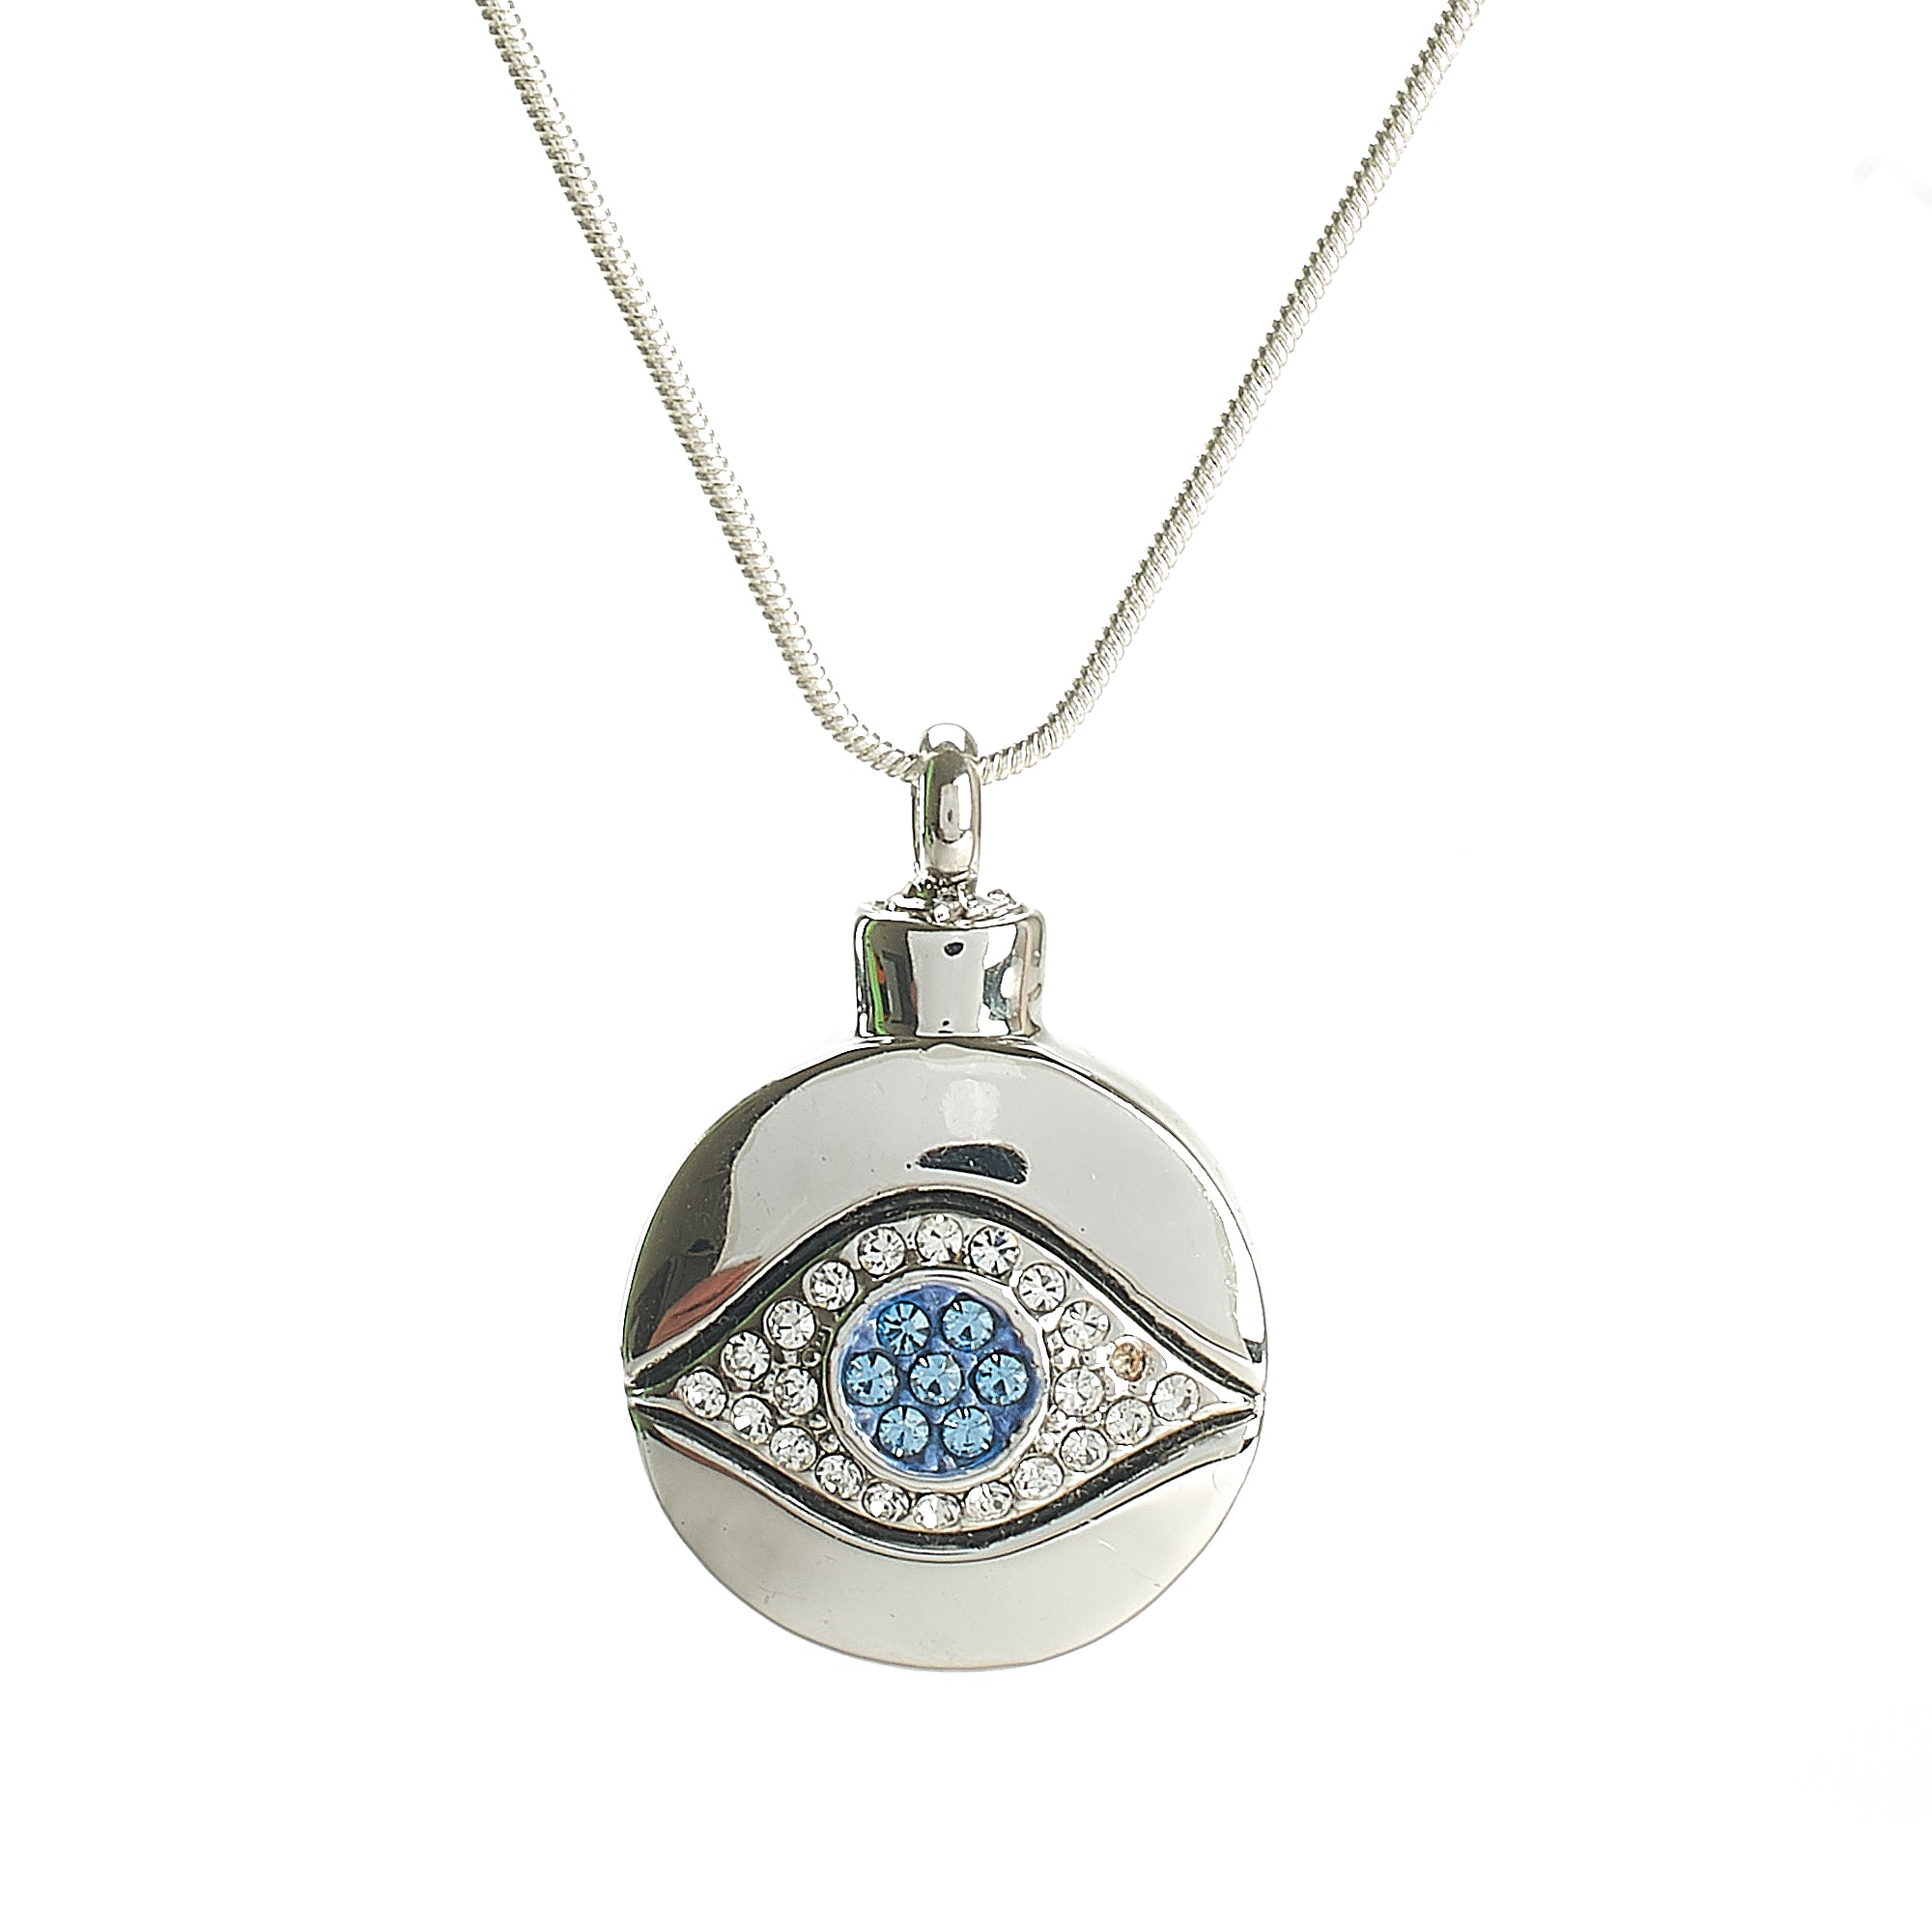 Cremation Pendant - High Shine Silver Round Evil Eye